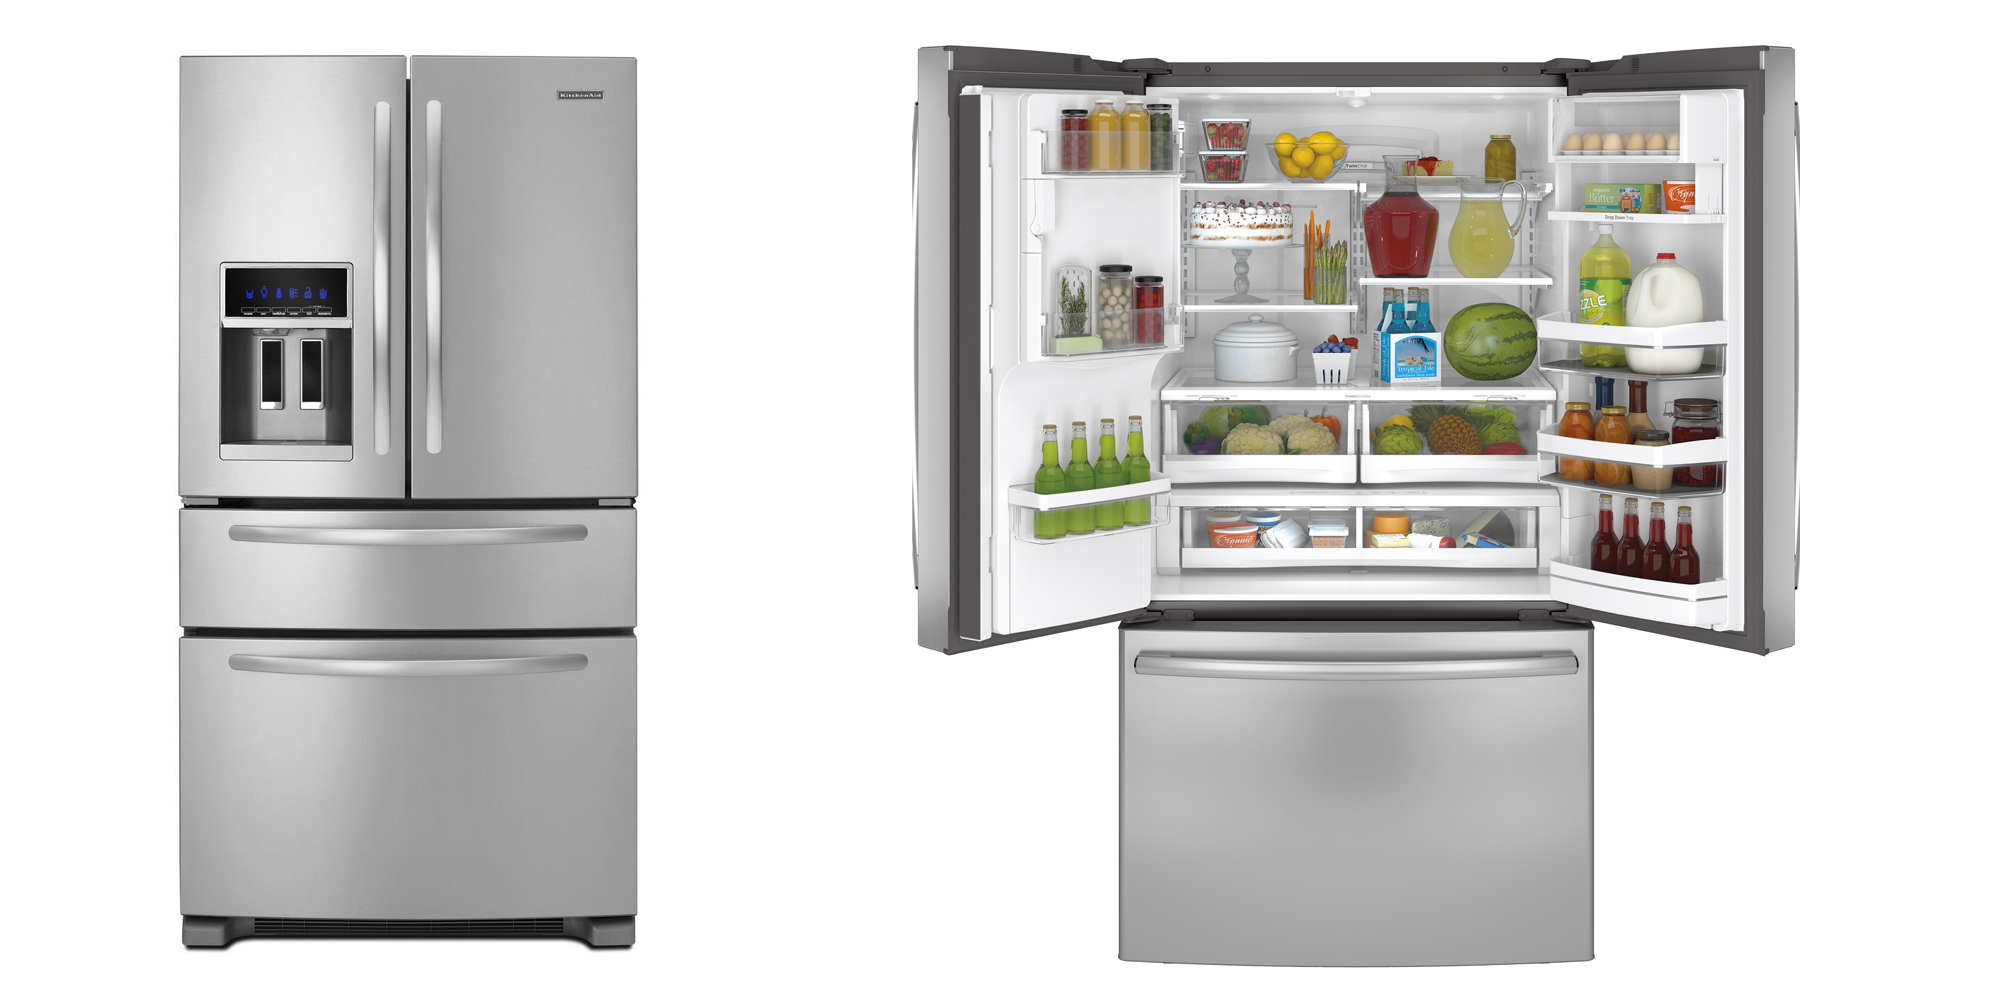 11 Best Stainless Steel Refrigerators In 2017 Top French